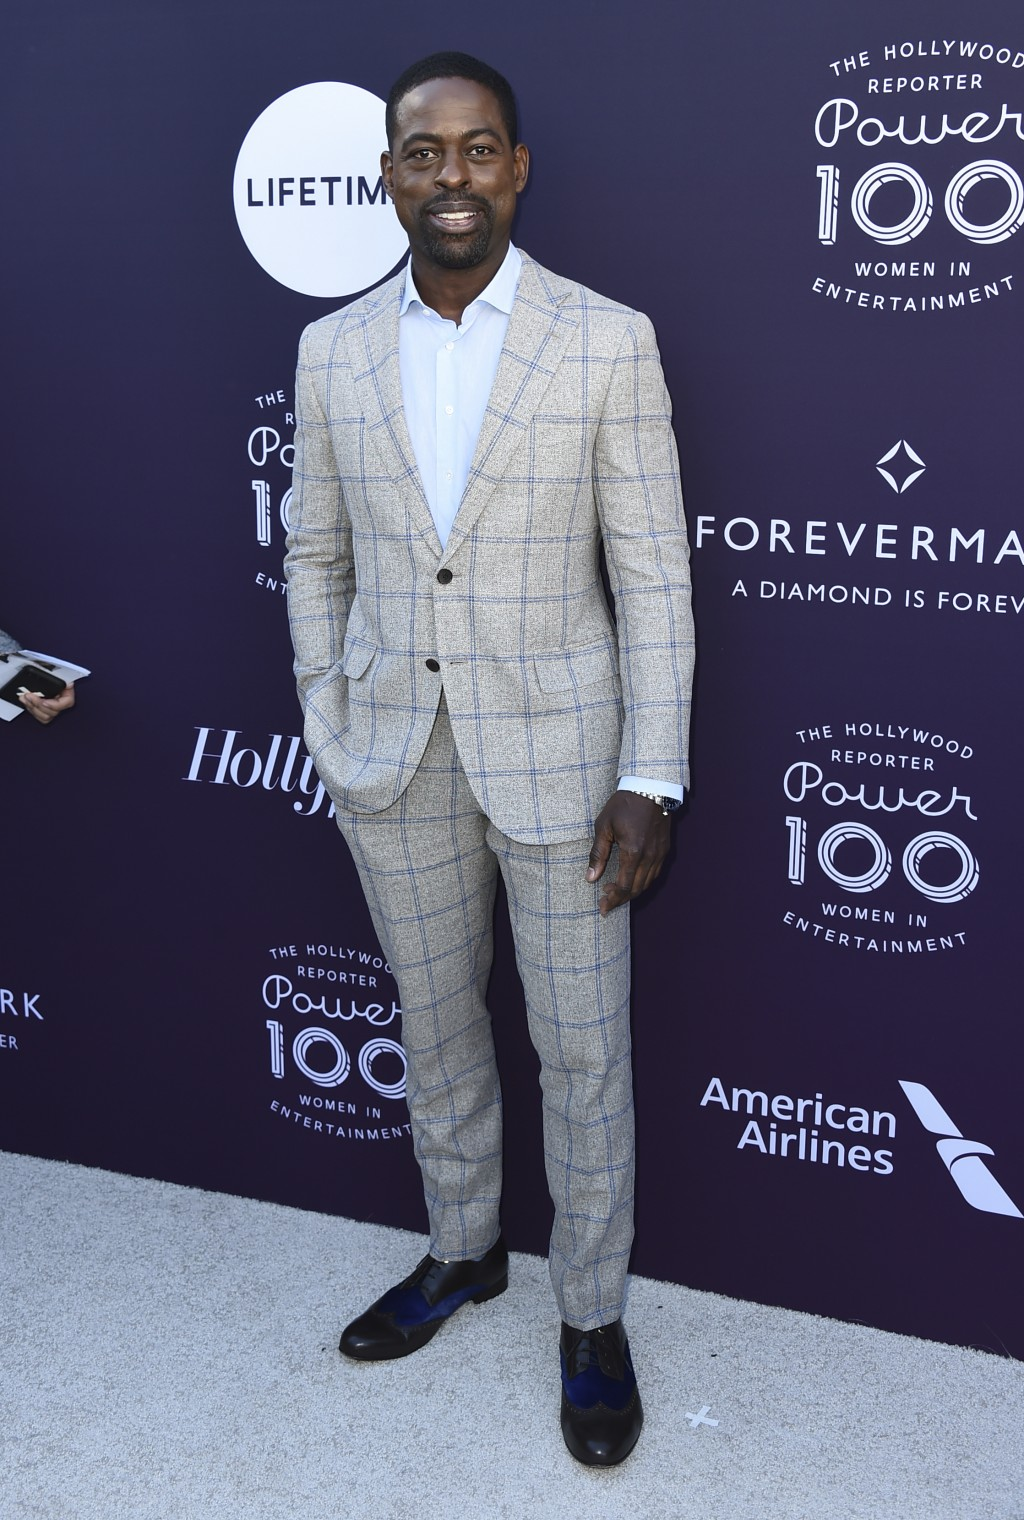 Sterling K. Brown arrives at The Hollywood Reporter's Women in Entertainment Breakfast at Milk Studios on Wednesday, Dec. 6, 2017, in Los Angeles. (Ph